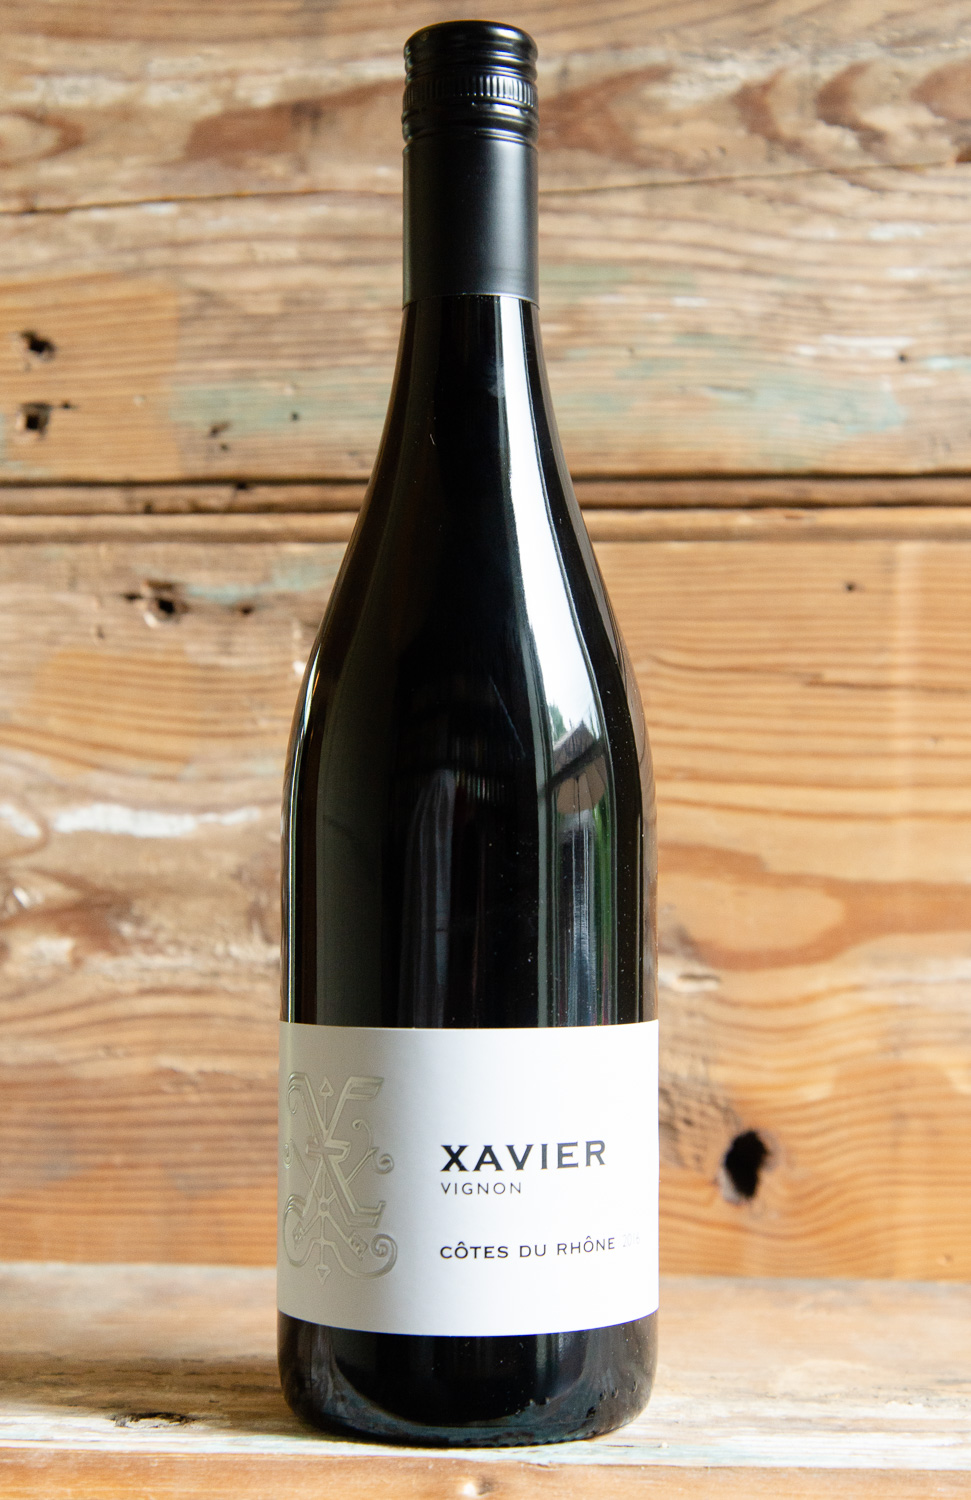 """Xavier Côtes du Rhône 2016 - Origin: FranceRetail: $16.95 